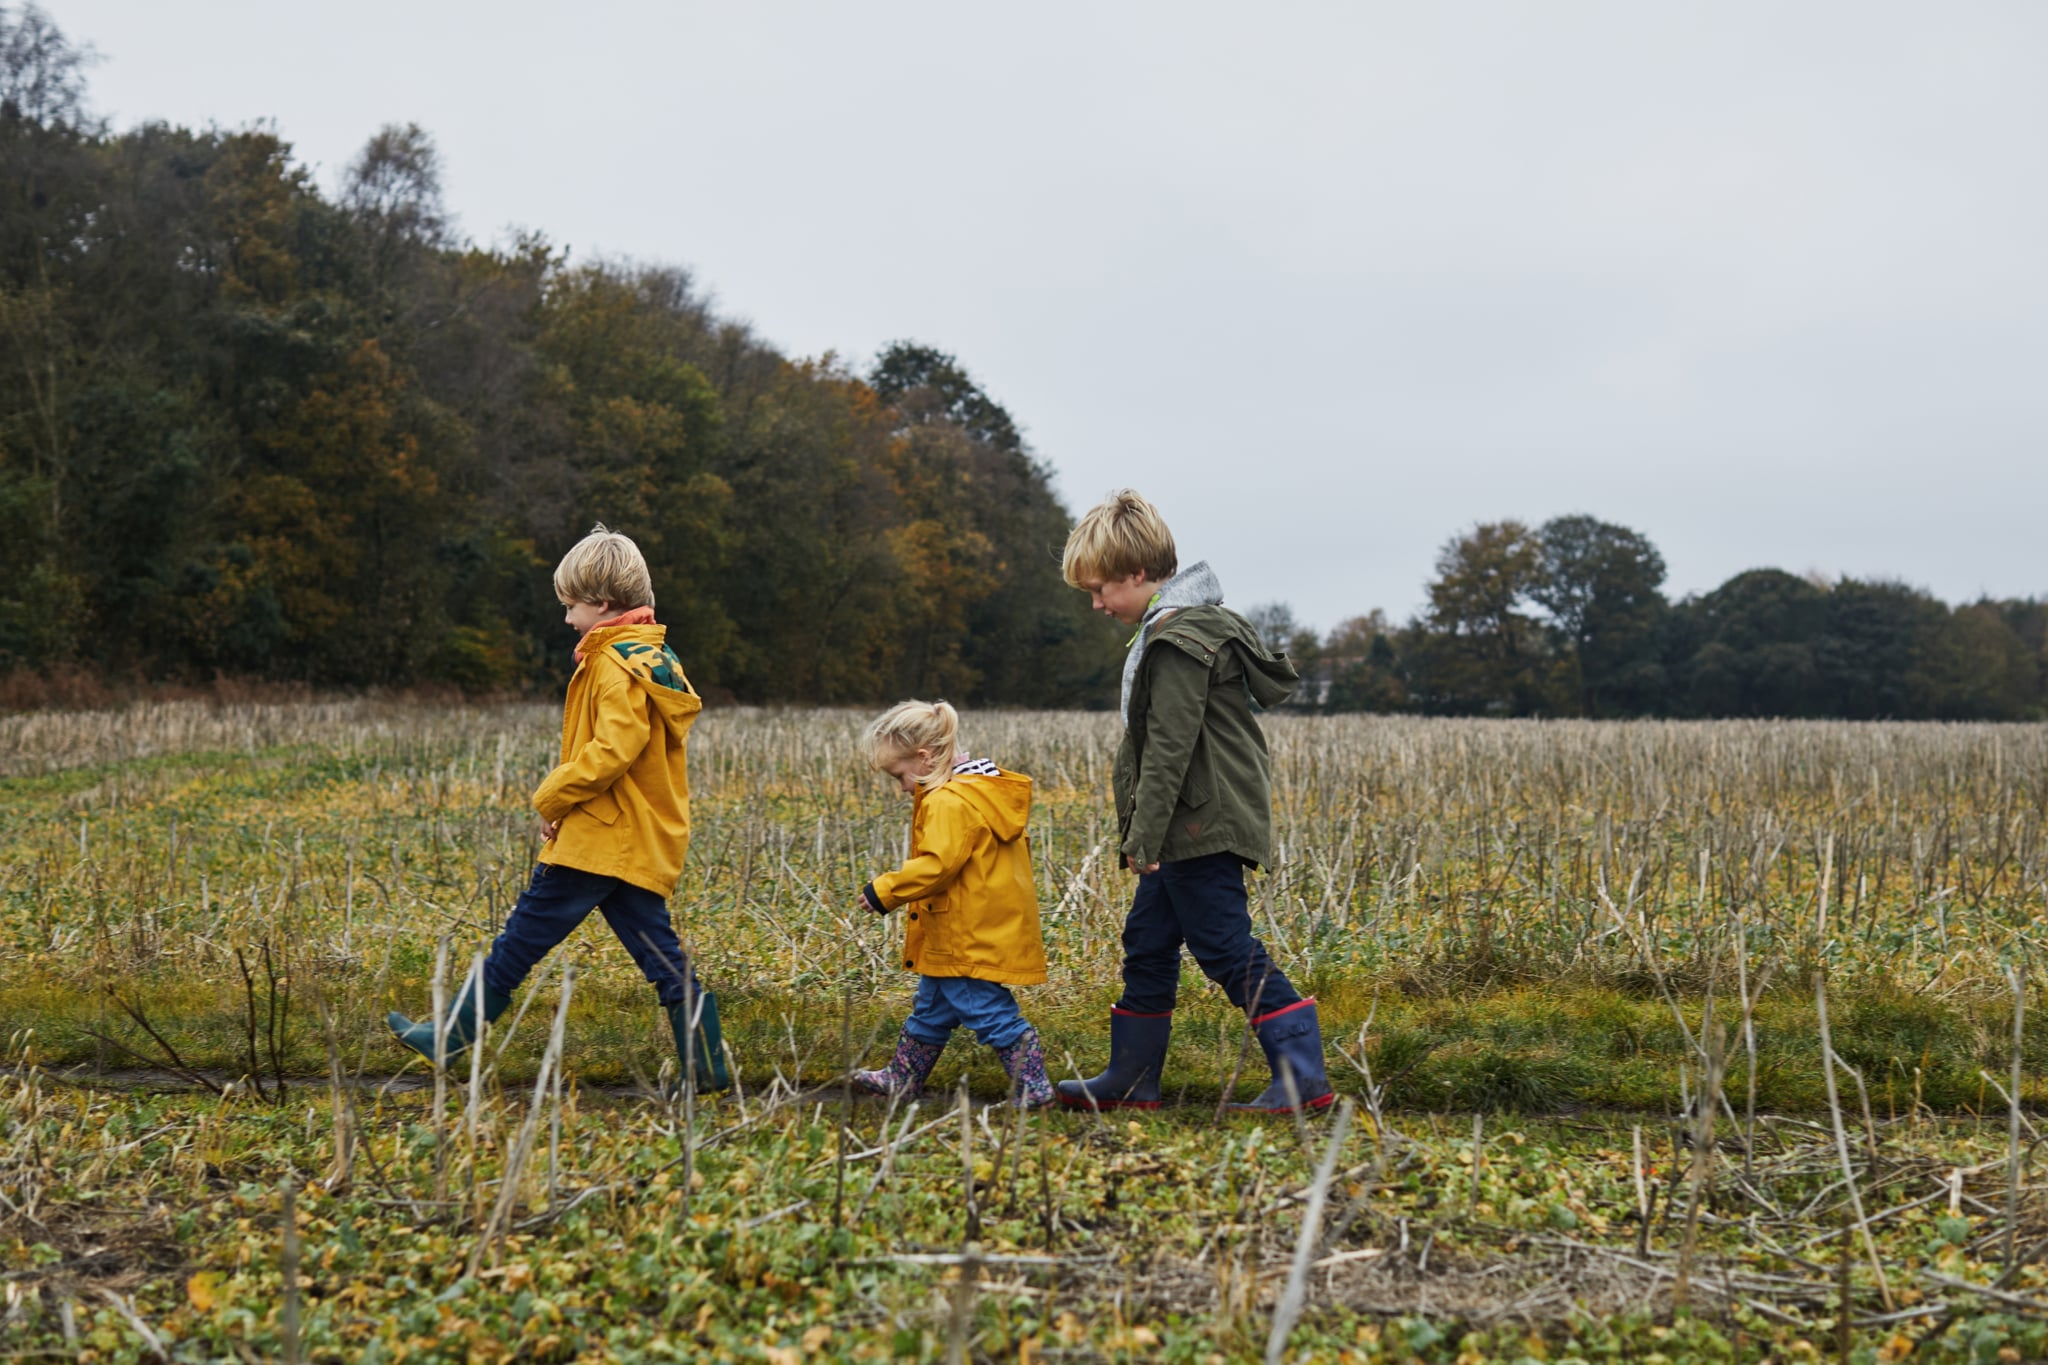 Three siblings walking though a field together